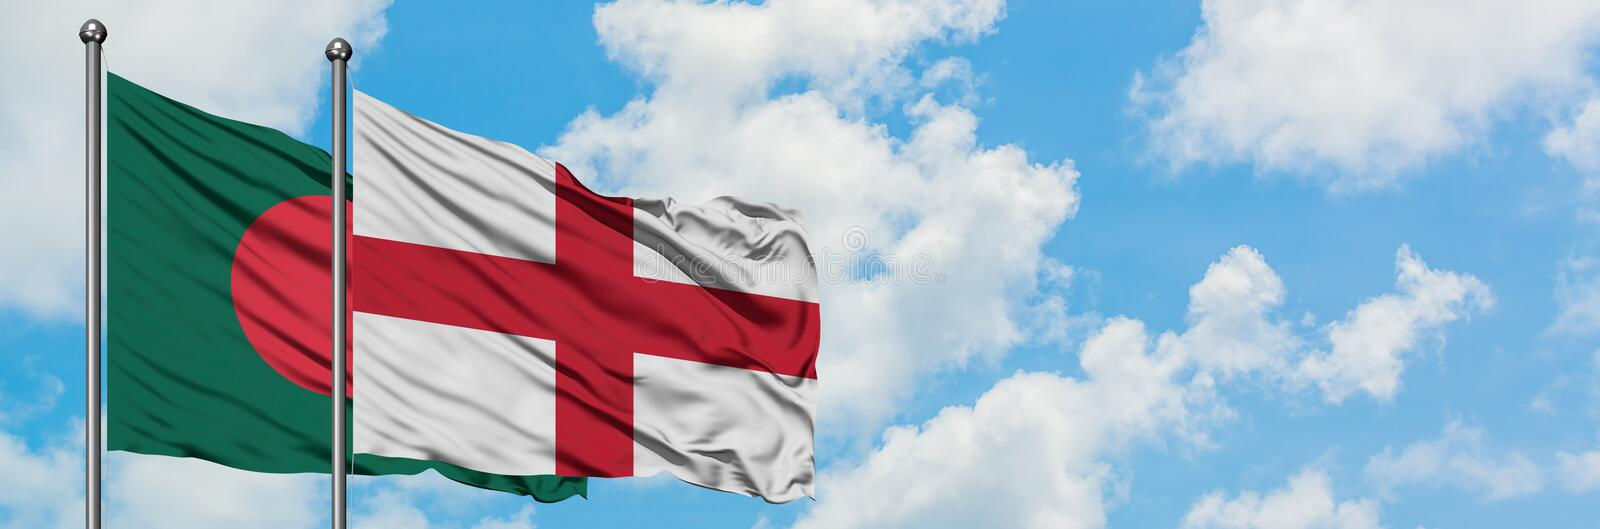 Bangladesh and England flag waving in the wind against white cloudy blue sky together. Diplomacy concept, international relations. Consul, diplomat, ambassador stock image